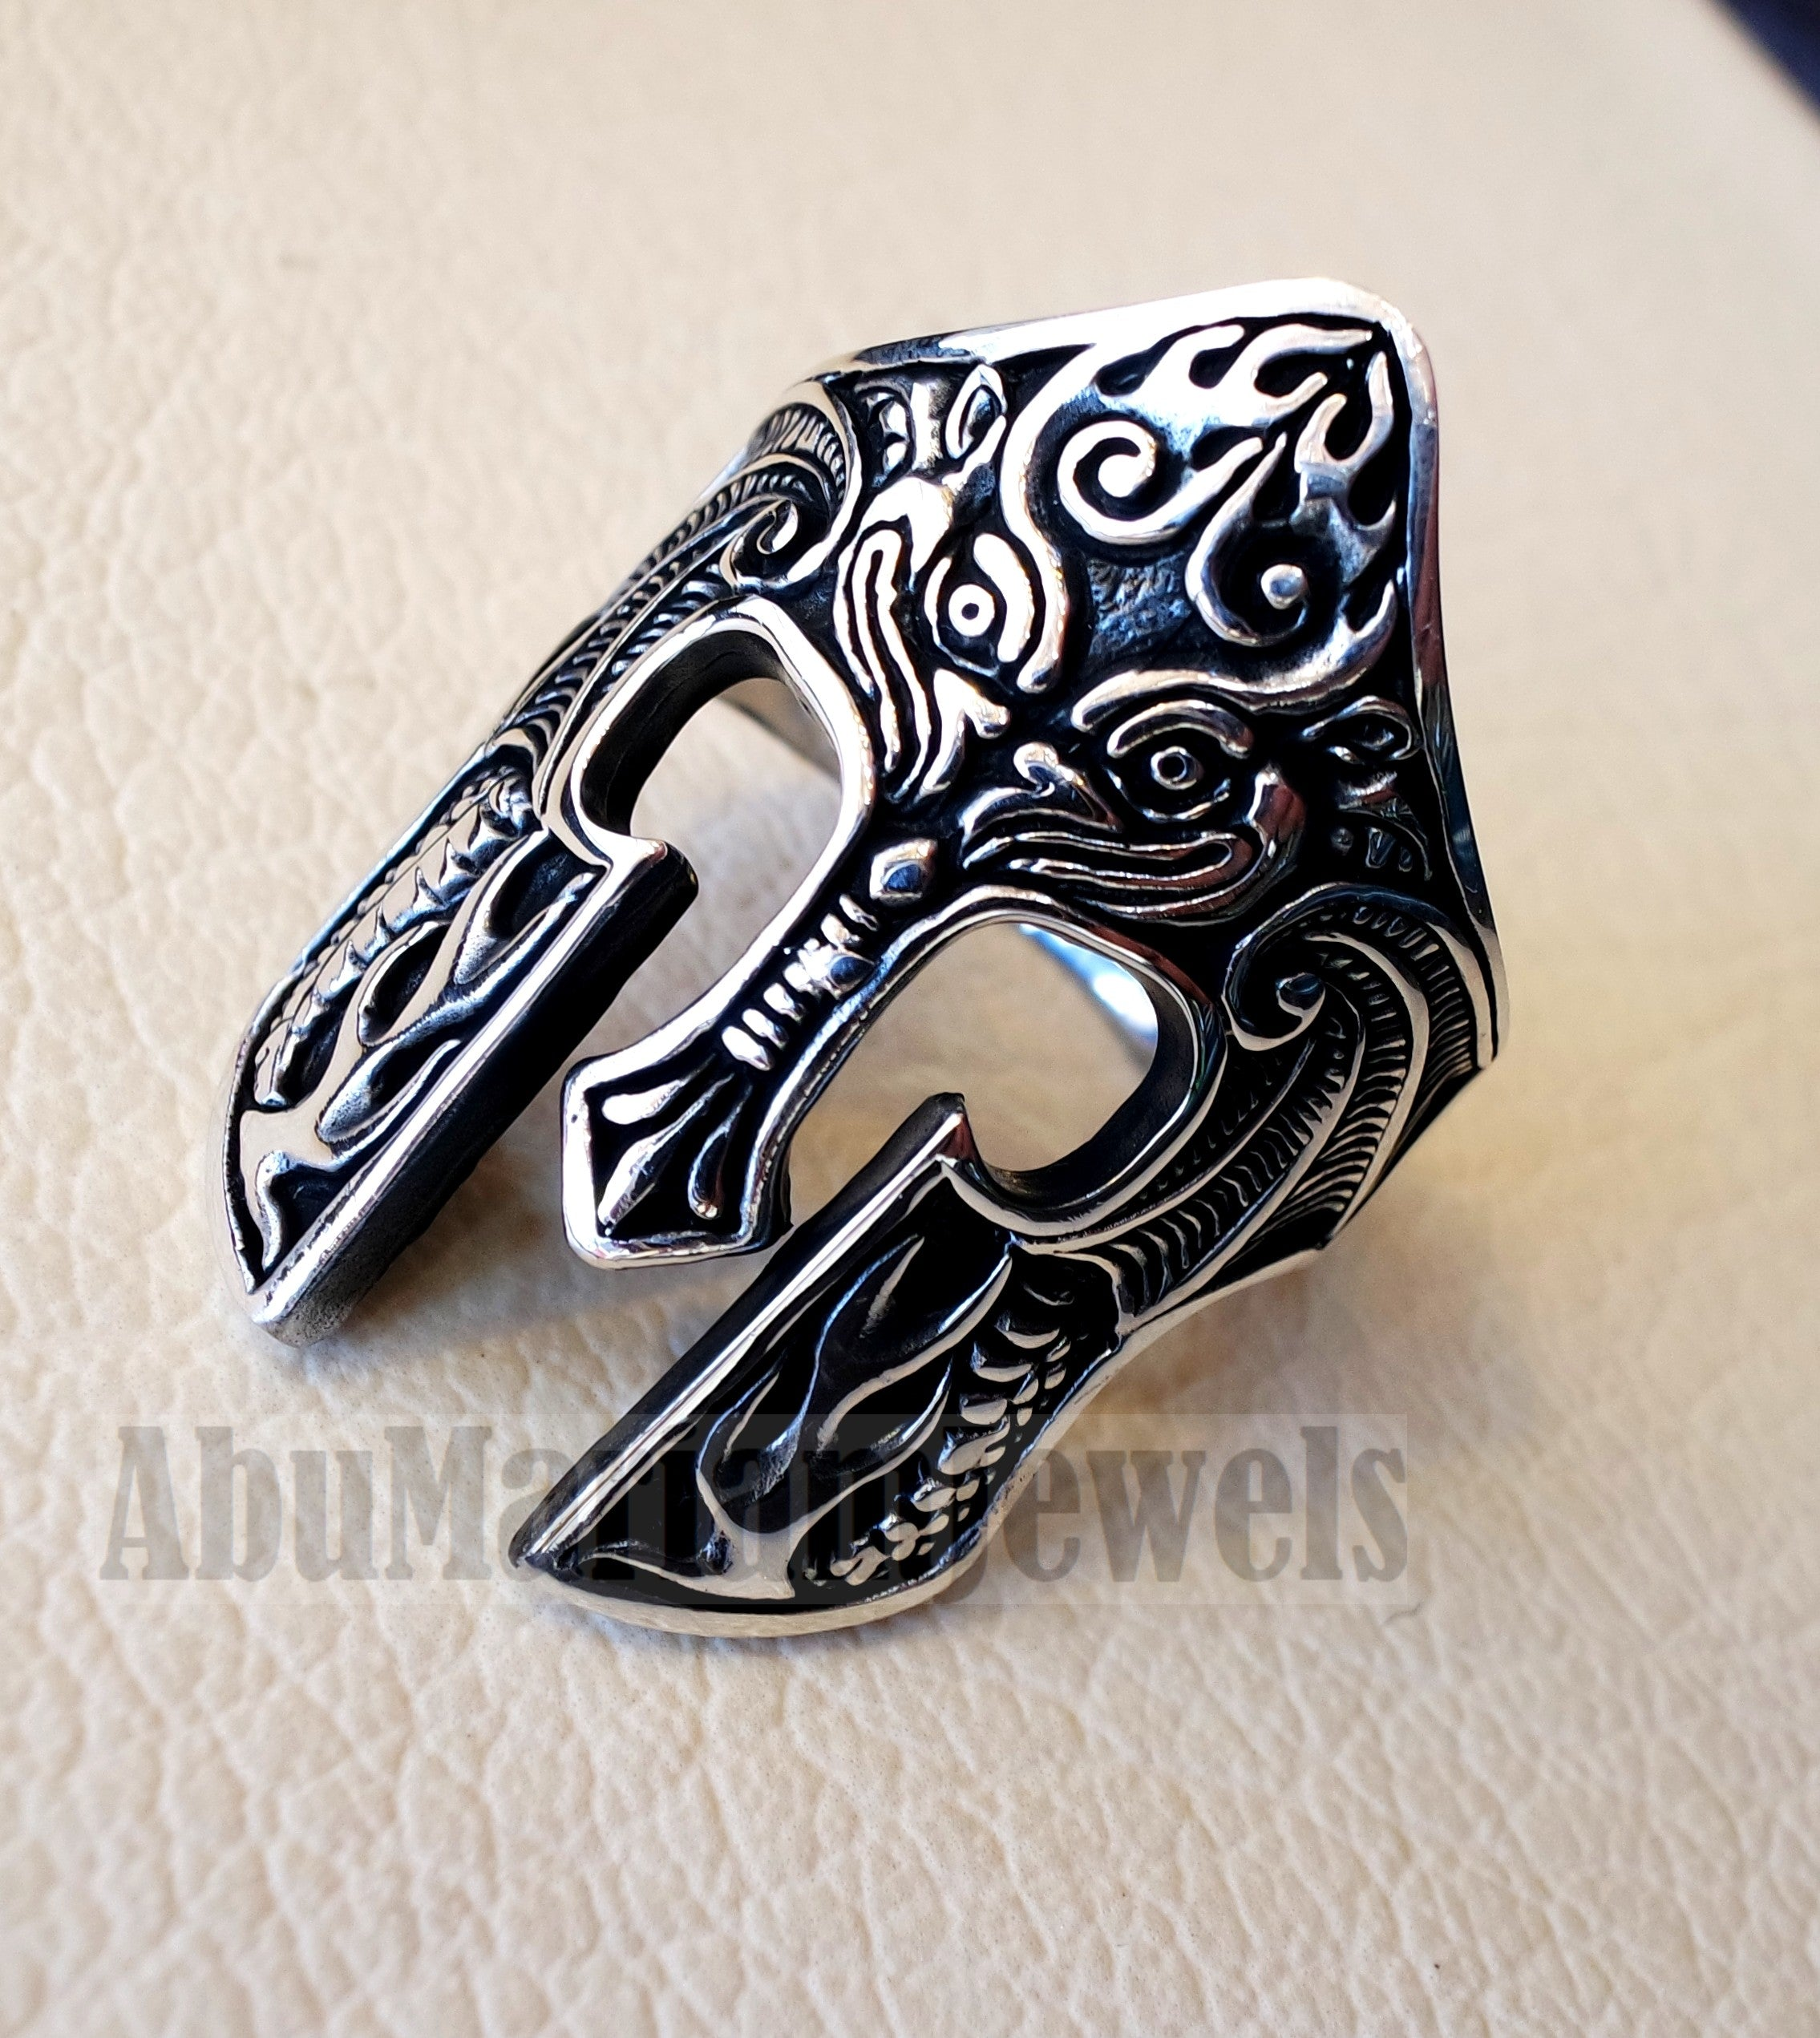 Warrior ring face mask ring sterling silver 925 huge man jewelry piece all sizes fast express shipping